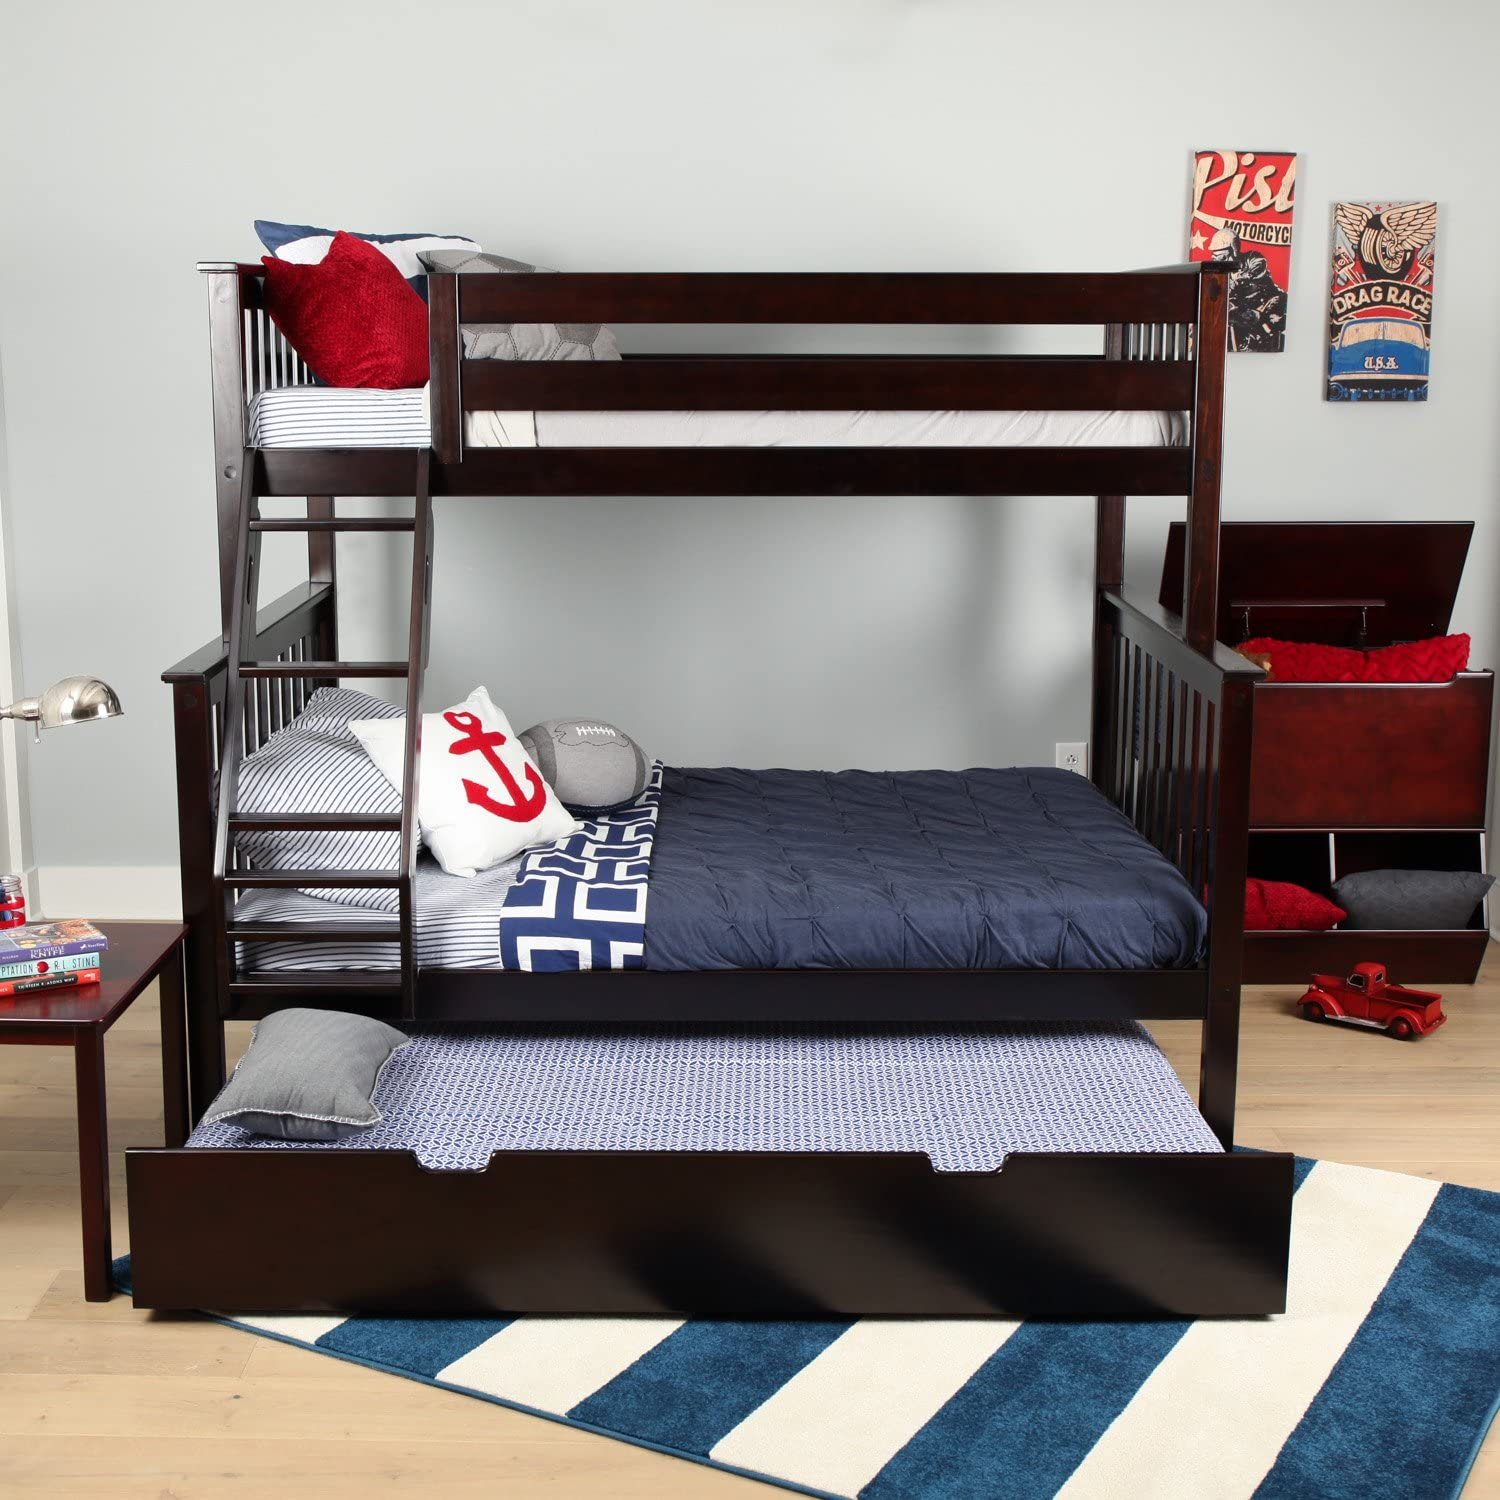 Top 9 Best Bunk Beds For Toddlers, Twins in 2020 7